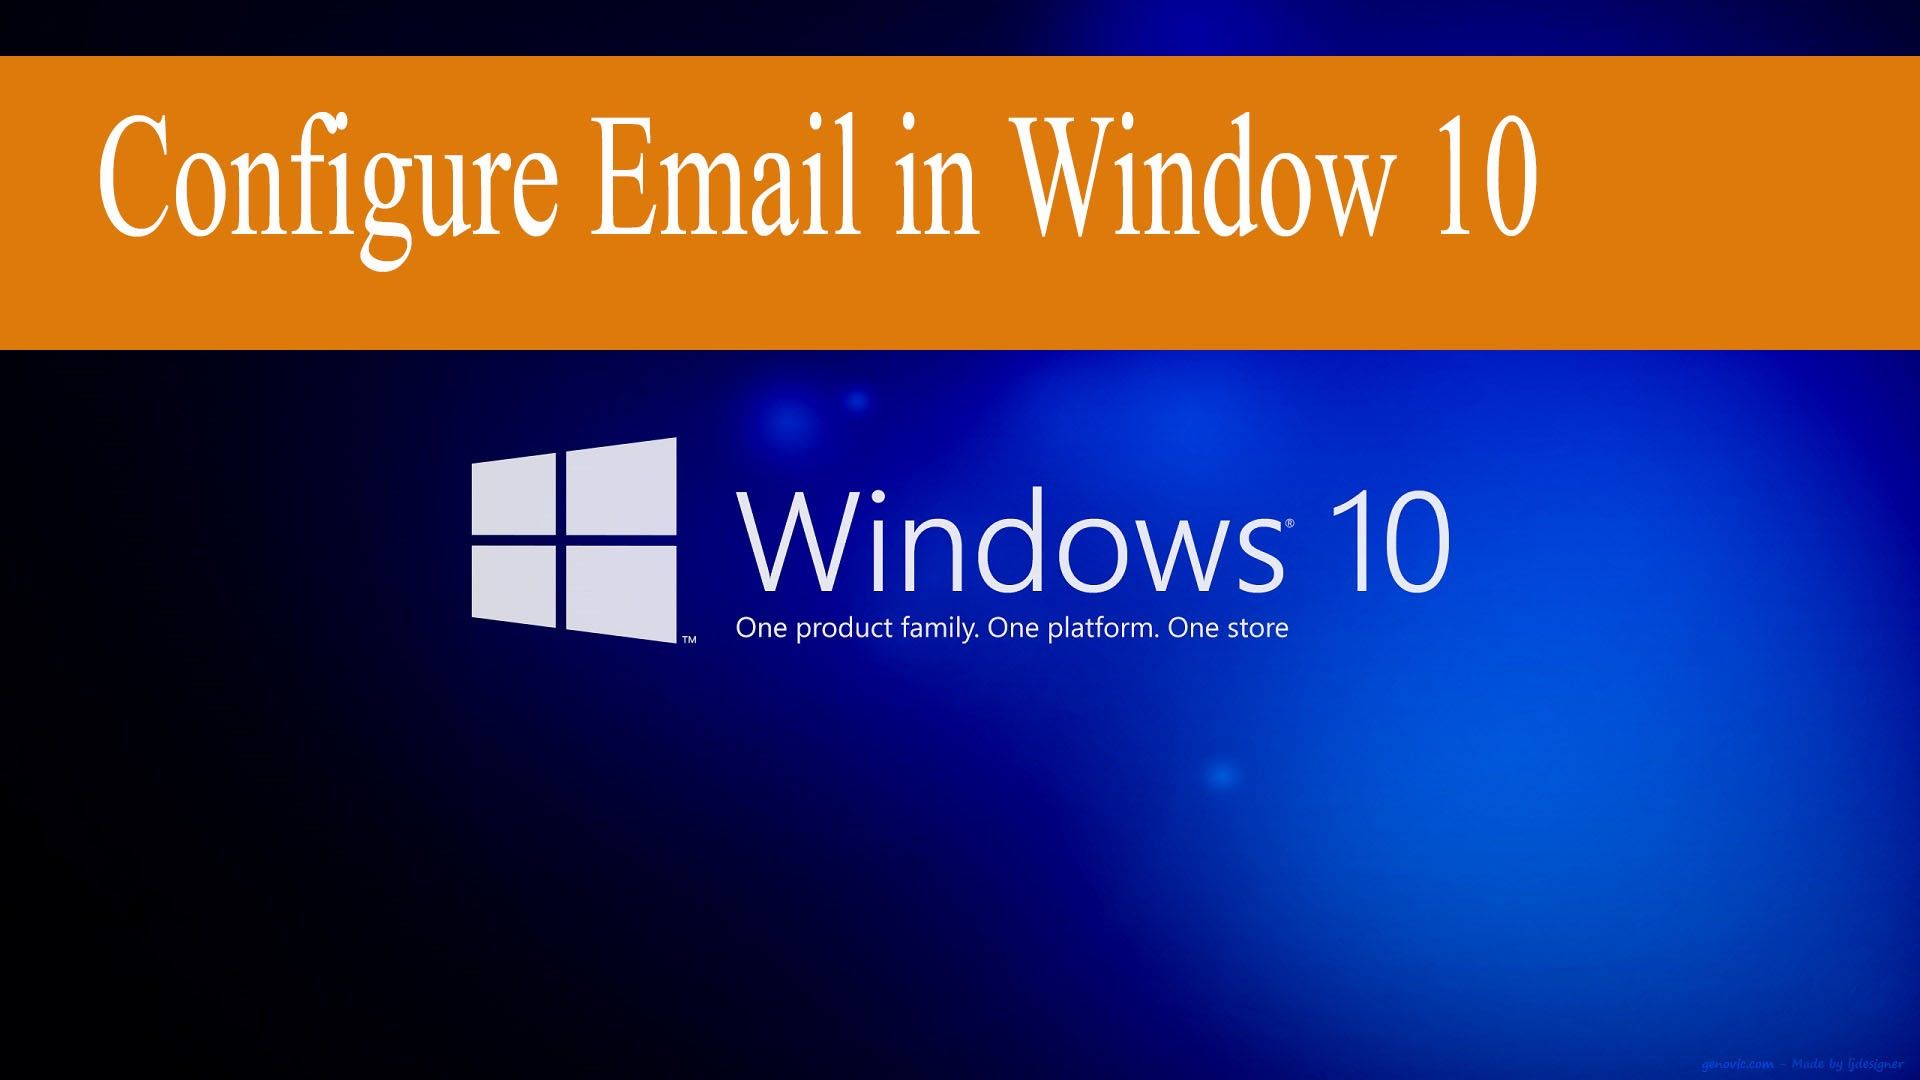 How to configure Email in Window 10